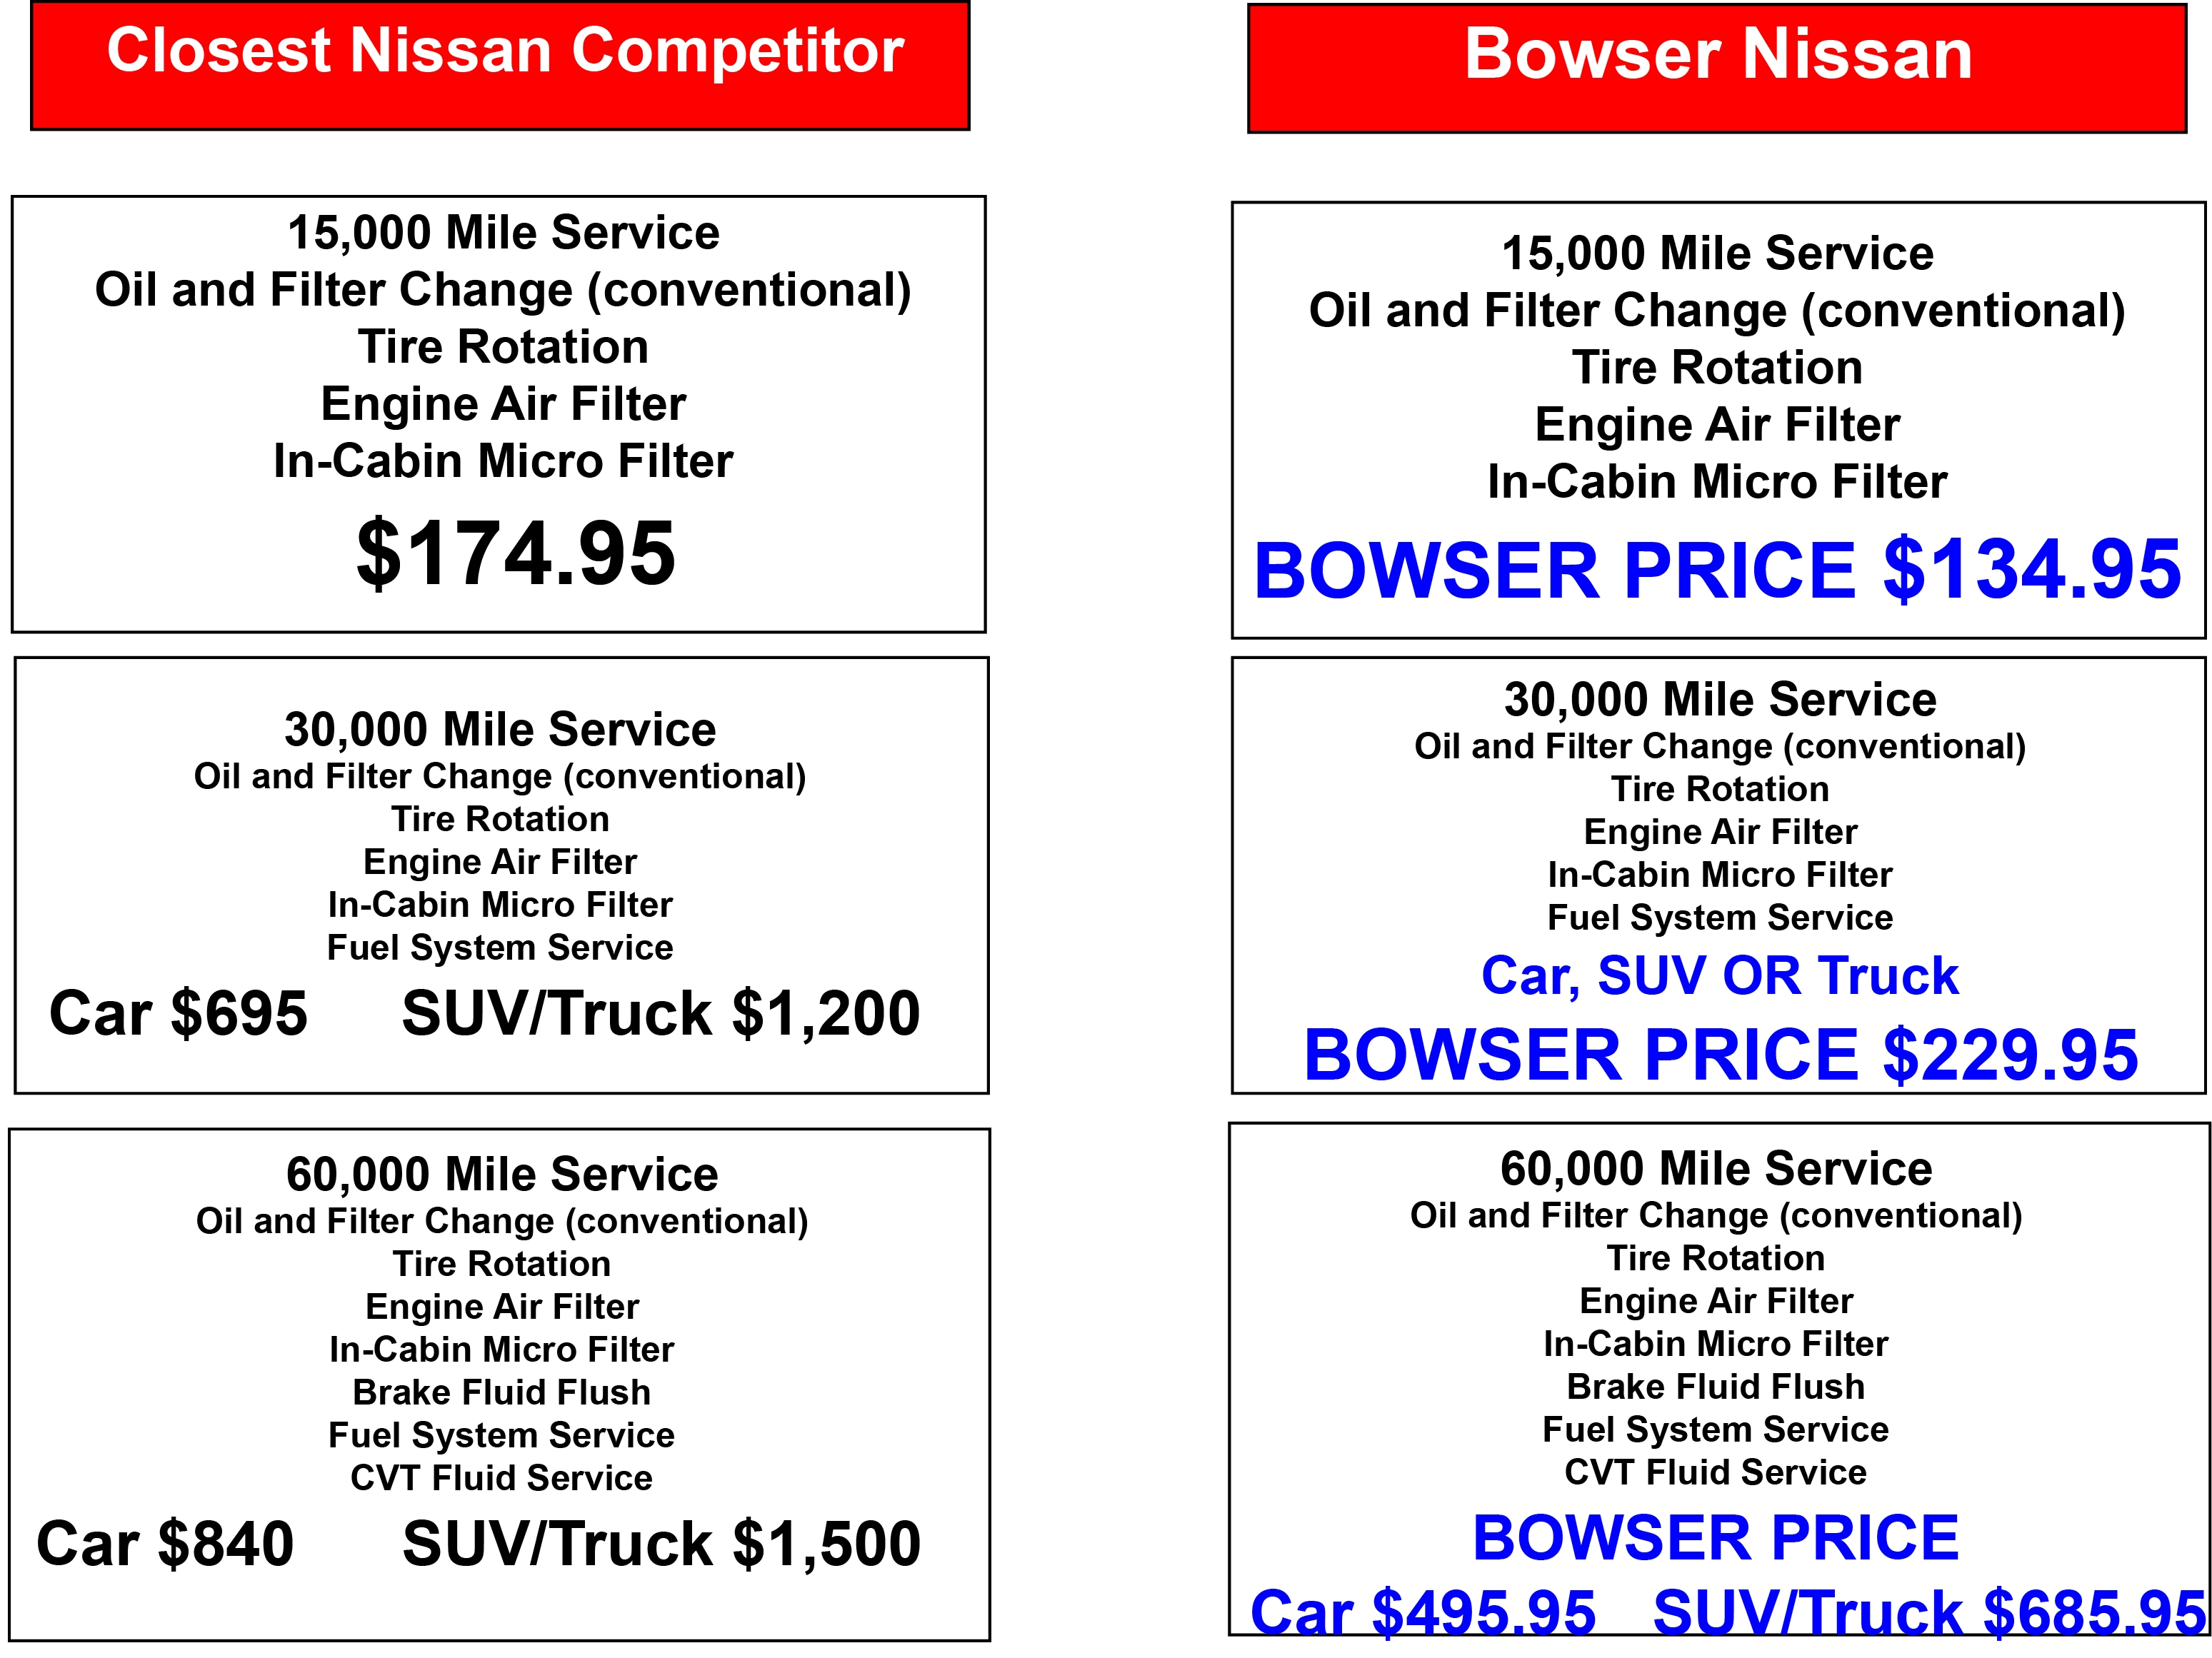 Bowser Nissan New Dealership In Pleasant Hills Pa 15236 Fuel System Service Center